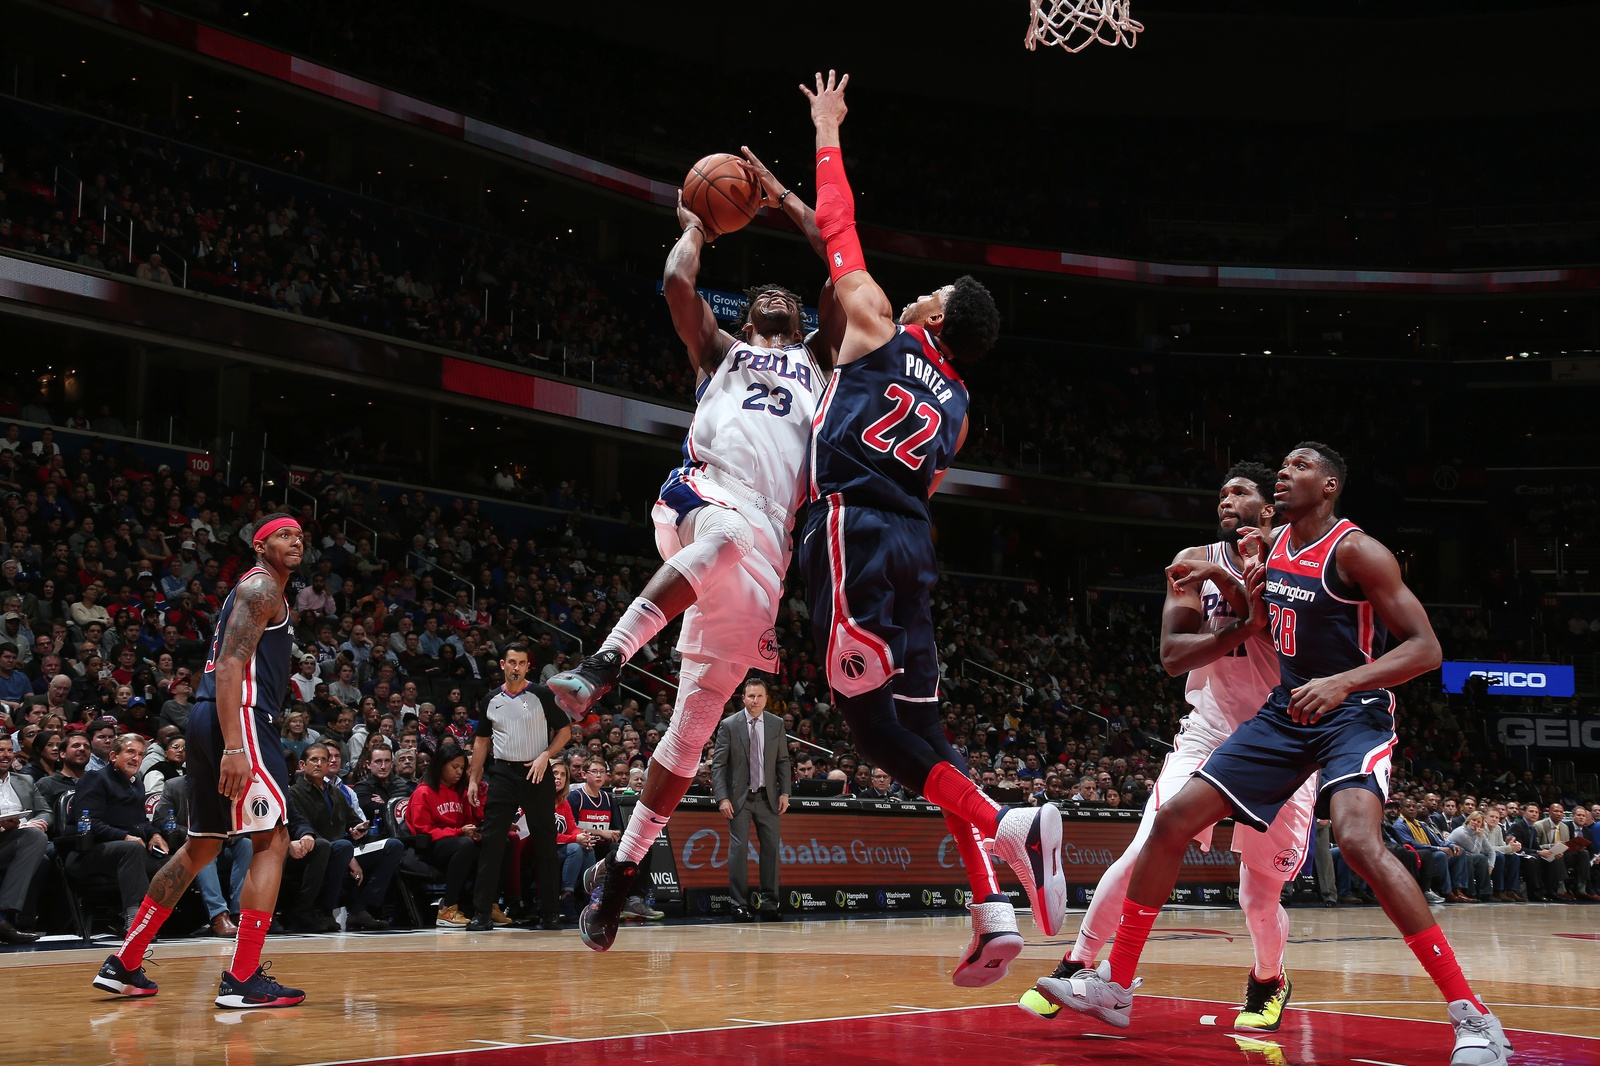 Jimmy Butler #23 of the Philadelphia 76ers shoots the ball against the Washington Wizards on January 9, 2019 at Capital One Arena in Washington, DC.